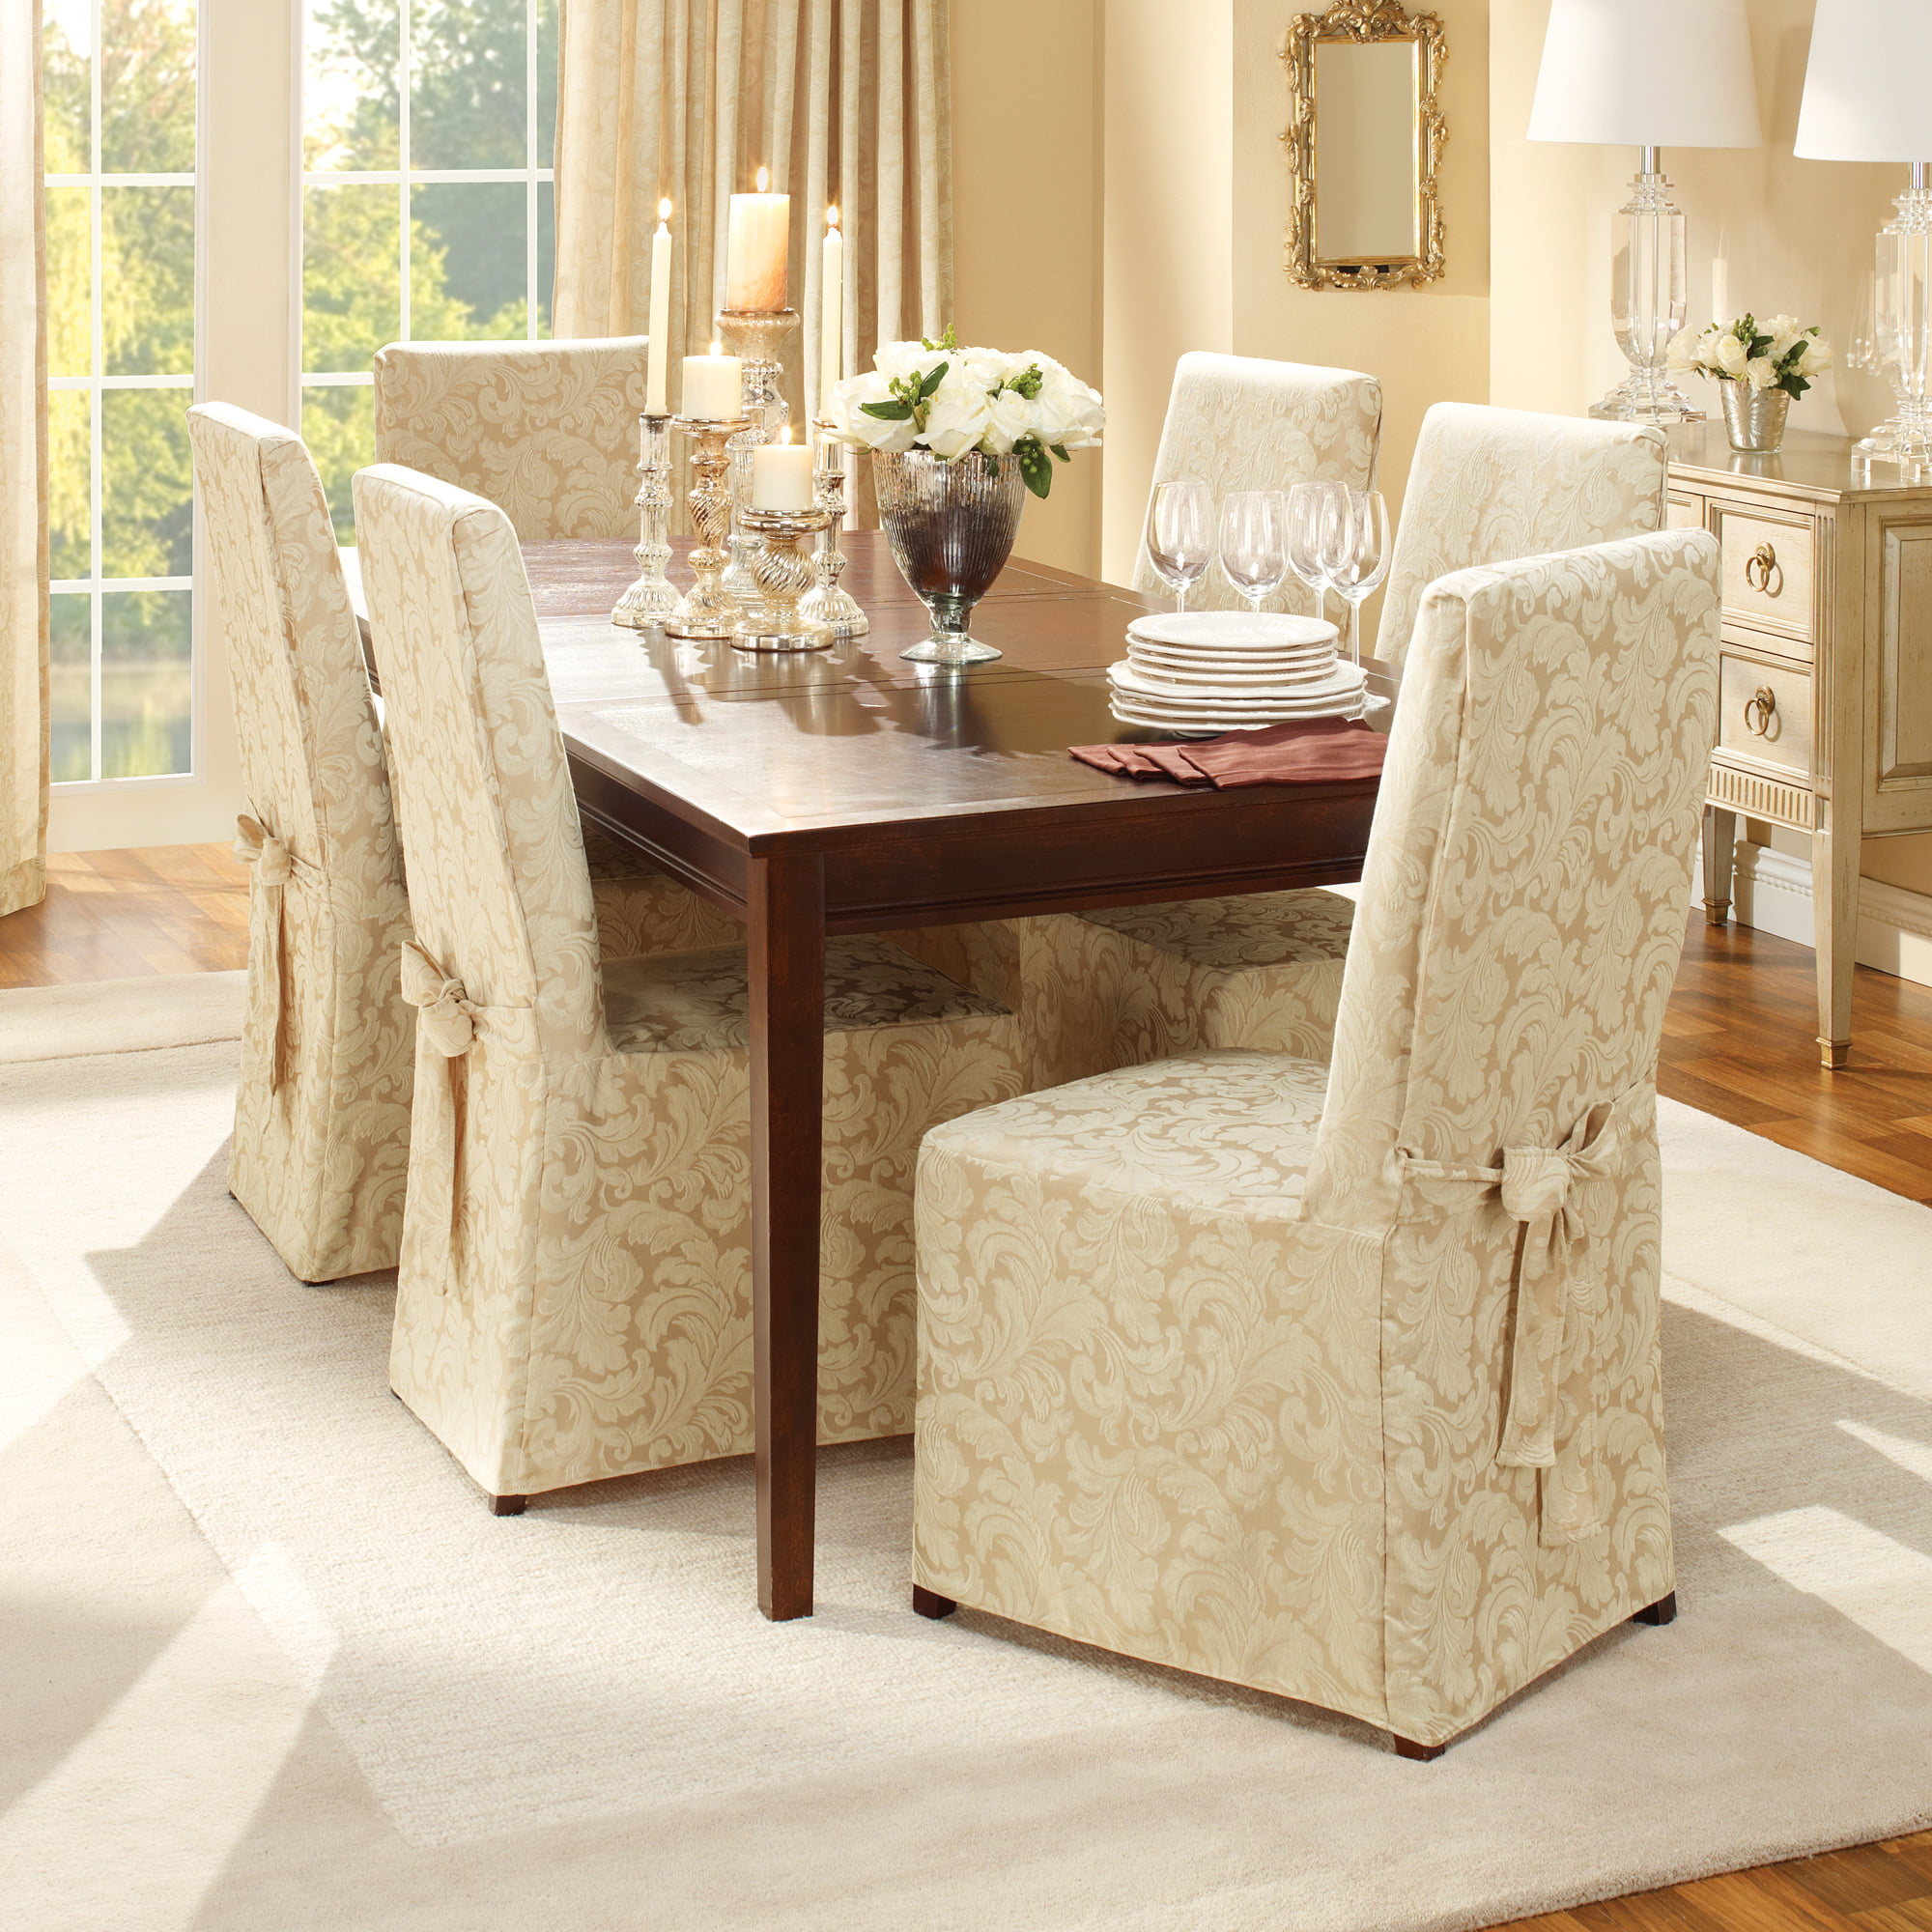 Sure Fit Scroll Full Length Skirt With, Surefit Round Back Dining Room Chair Slipcover